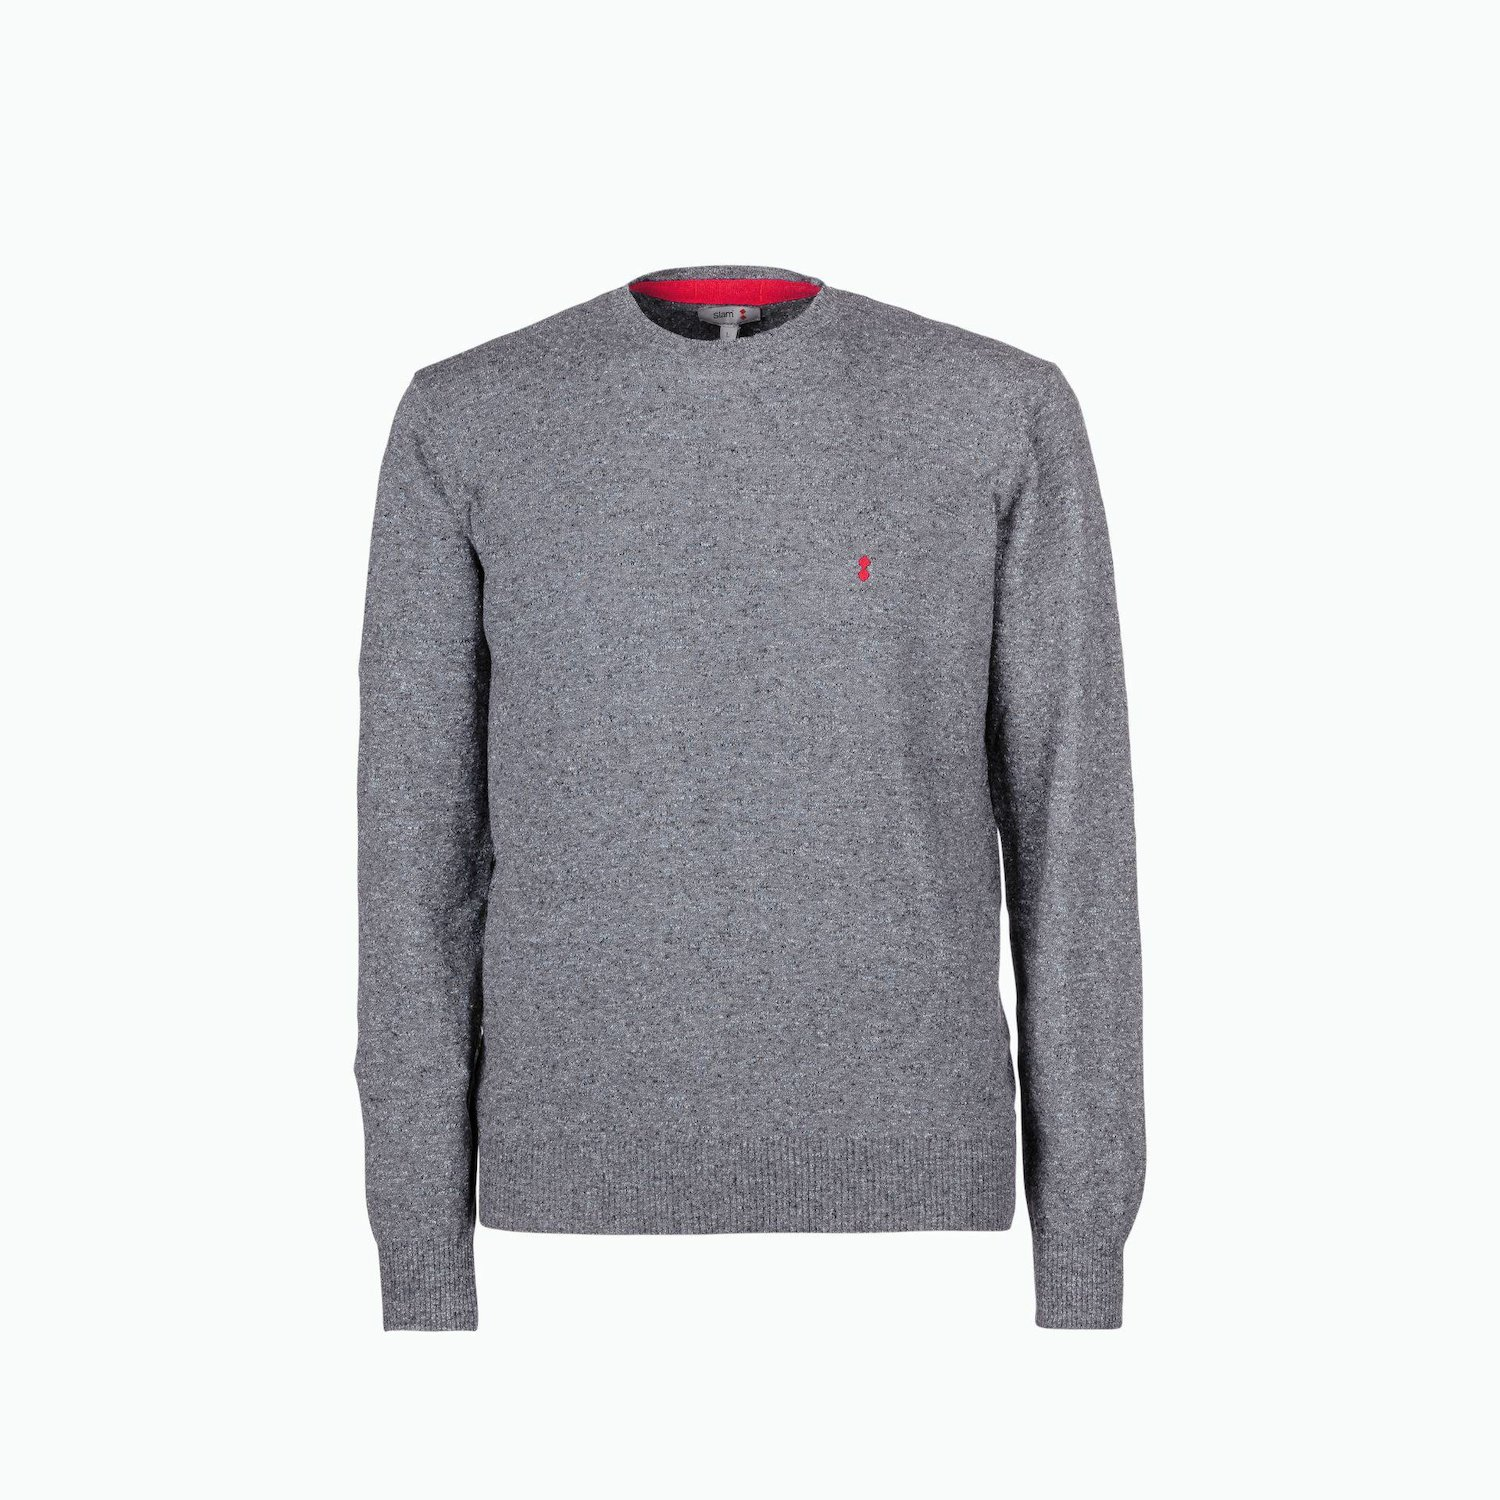 C205 Jumper - Grey Shark